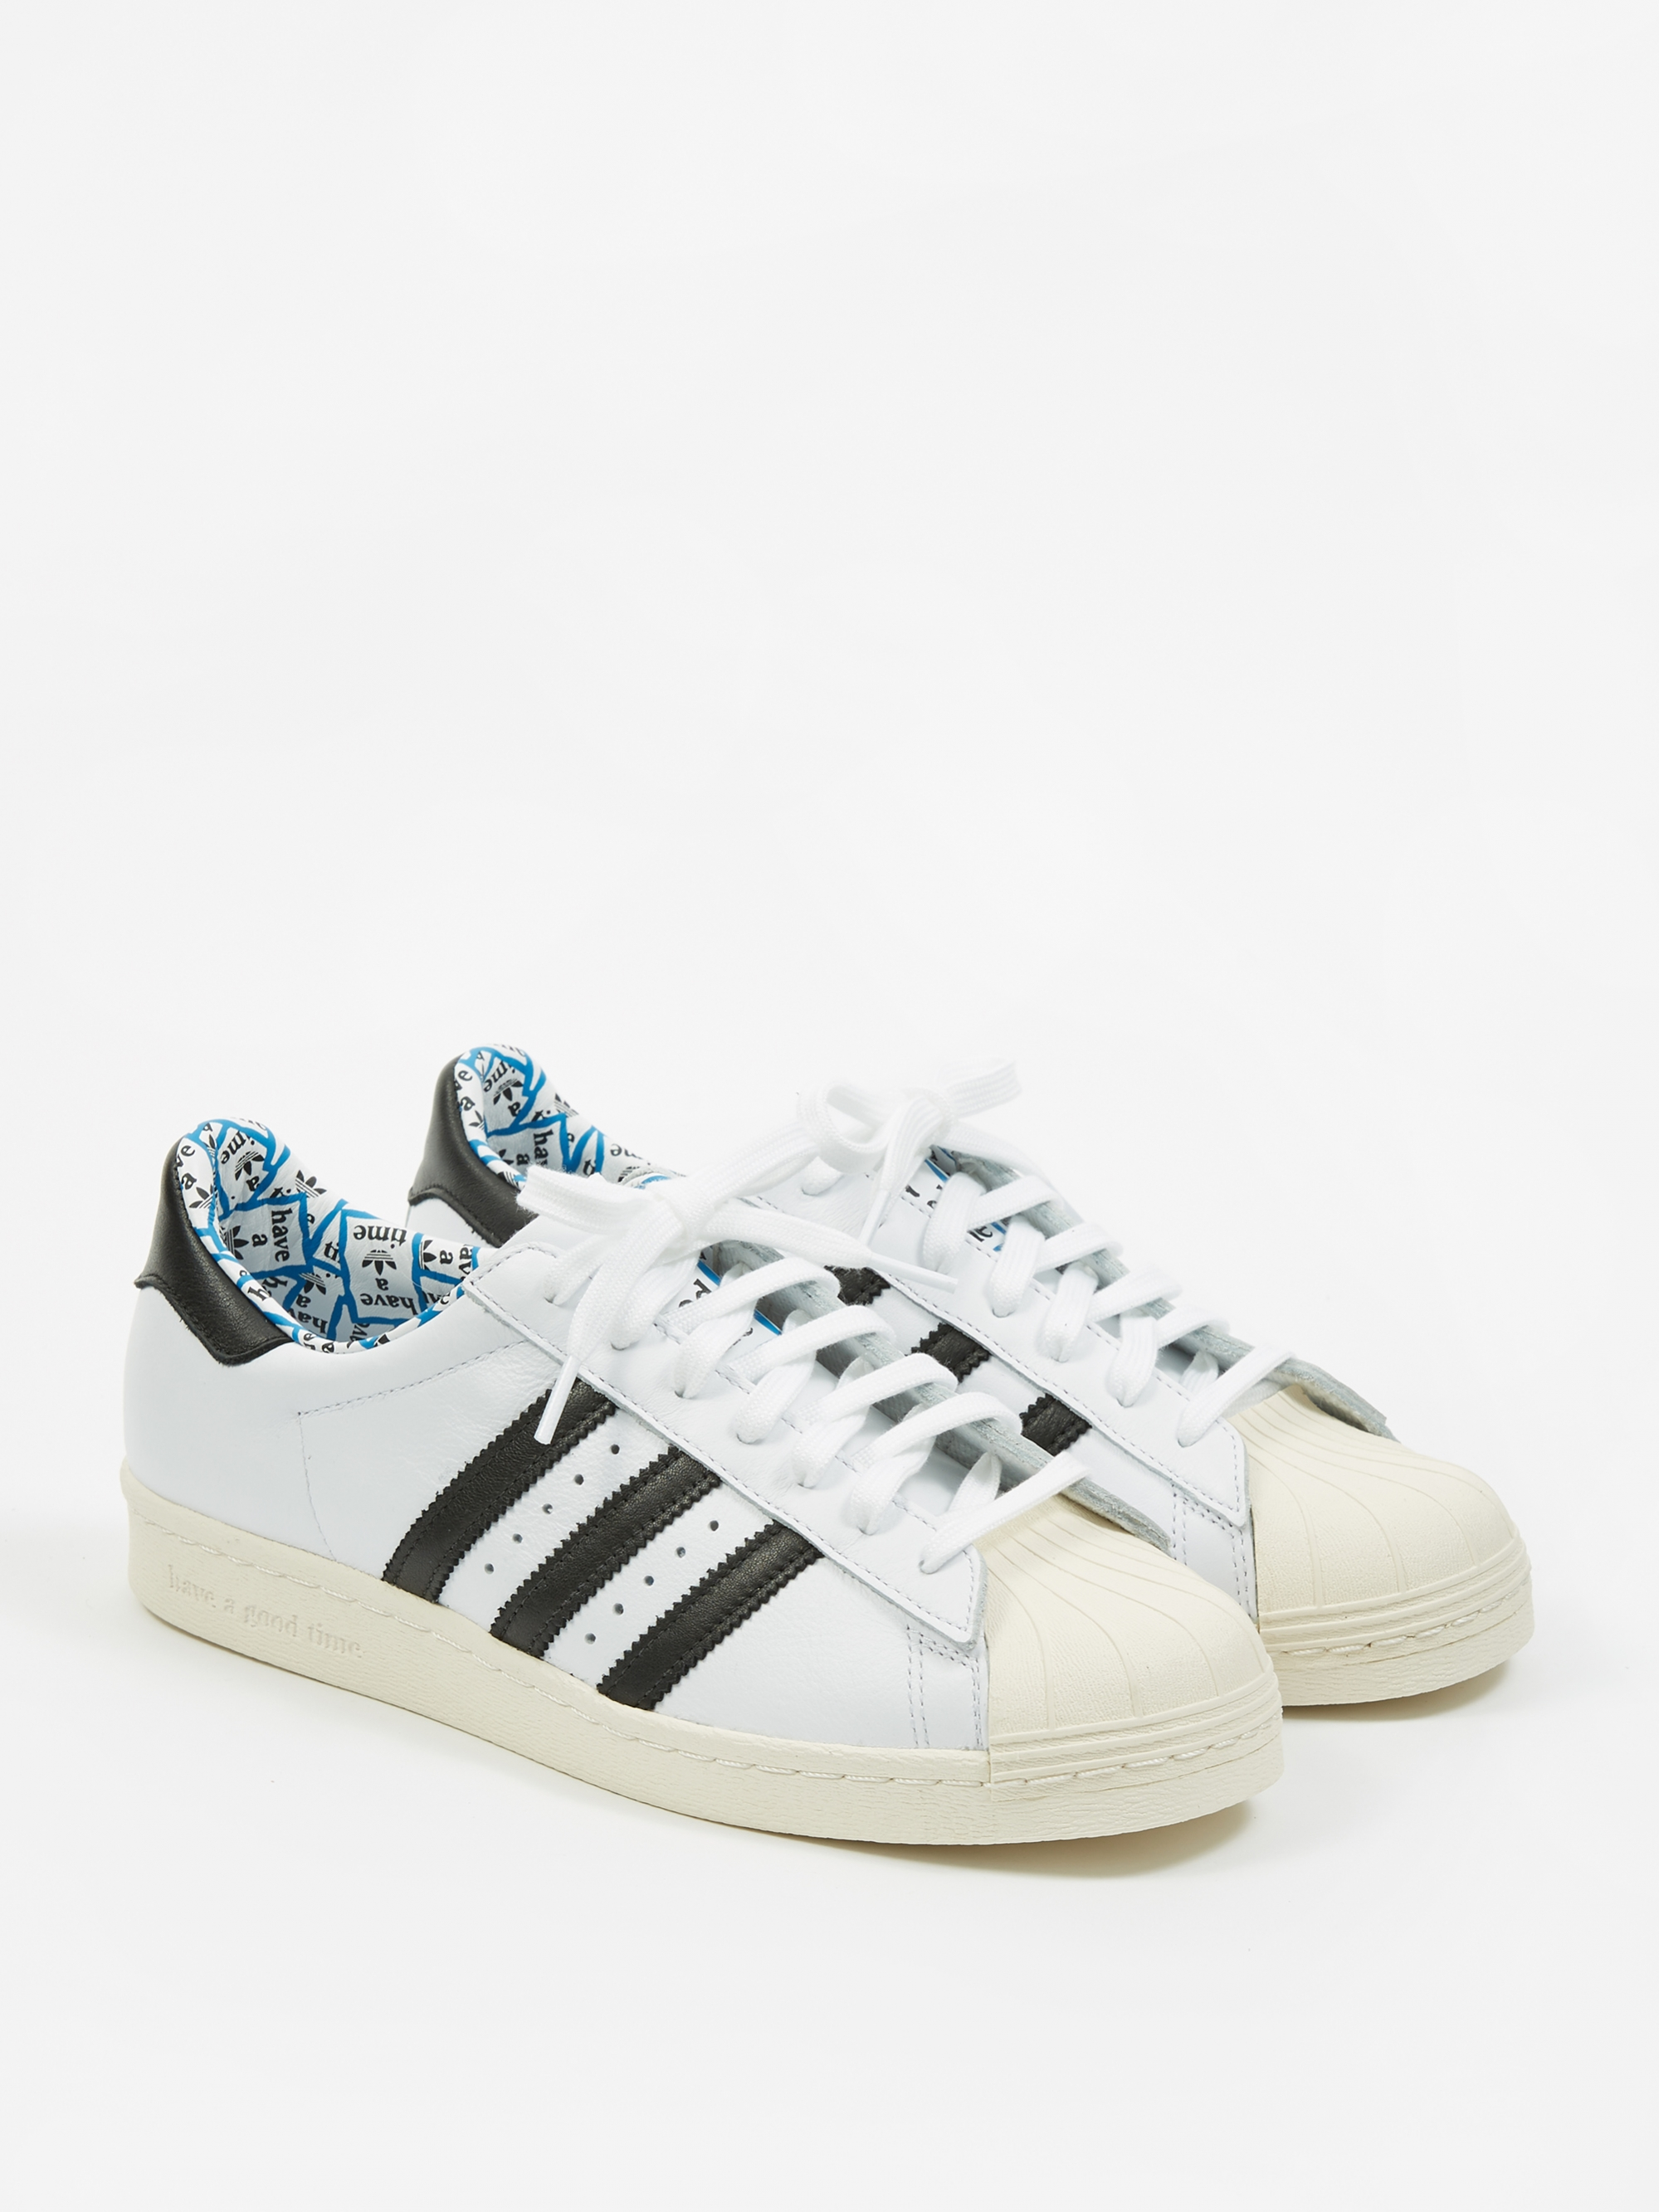 ADIDAS SUPERSTAR SHOES IN PAKISTAN WITH BLACK STRIPES